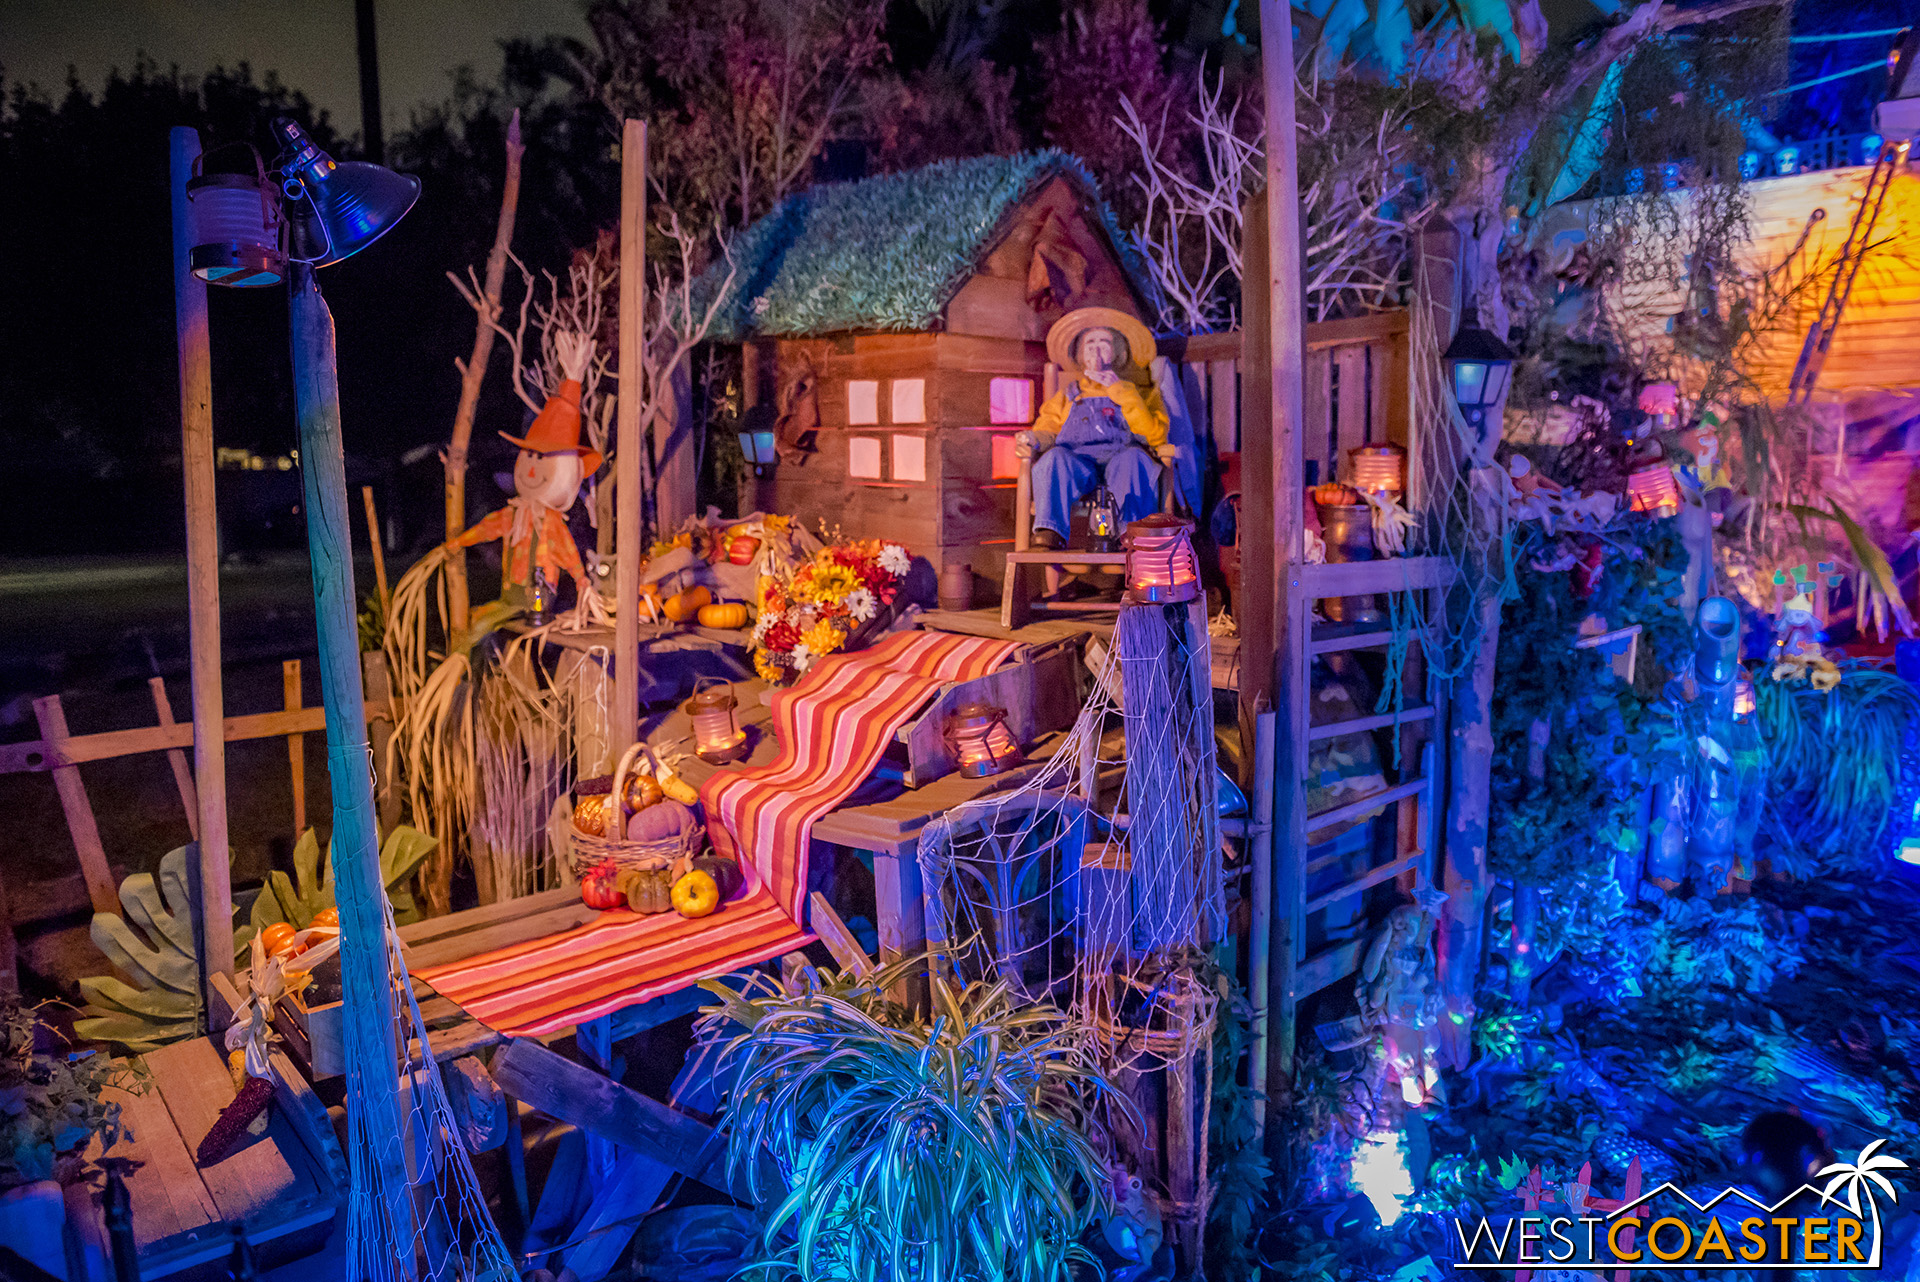 There's also a swampy bayou area, reminiscent of the beginning of the attraction as guests sail by the Blue Bayou Restaurant.